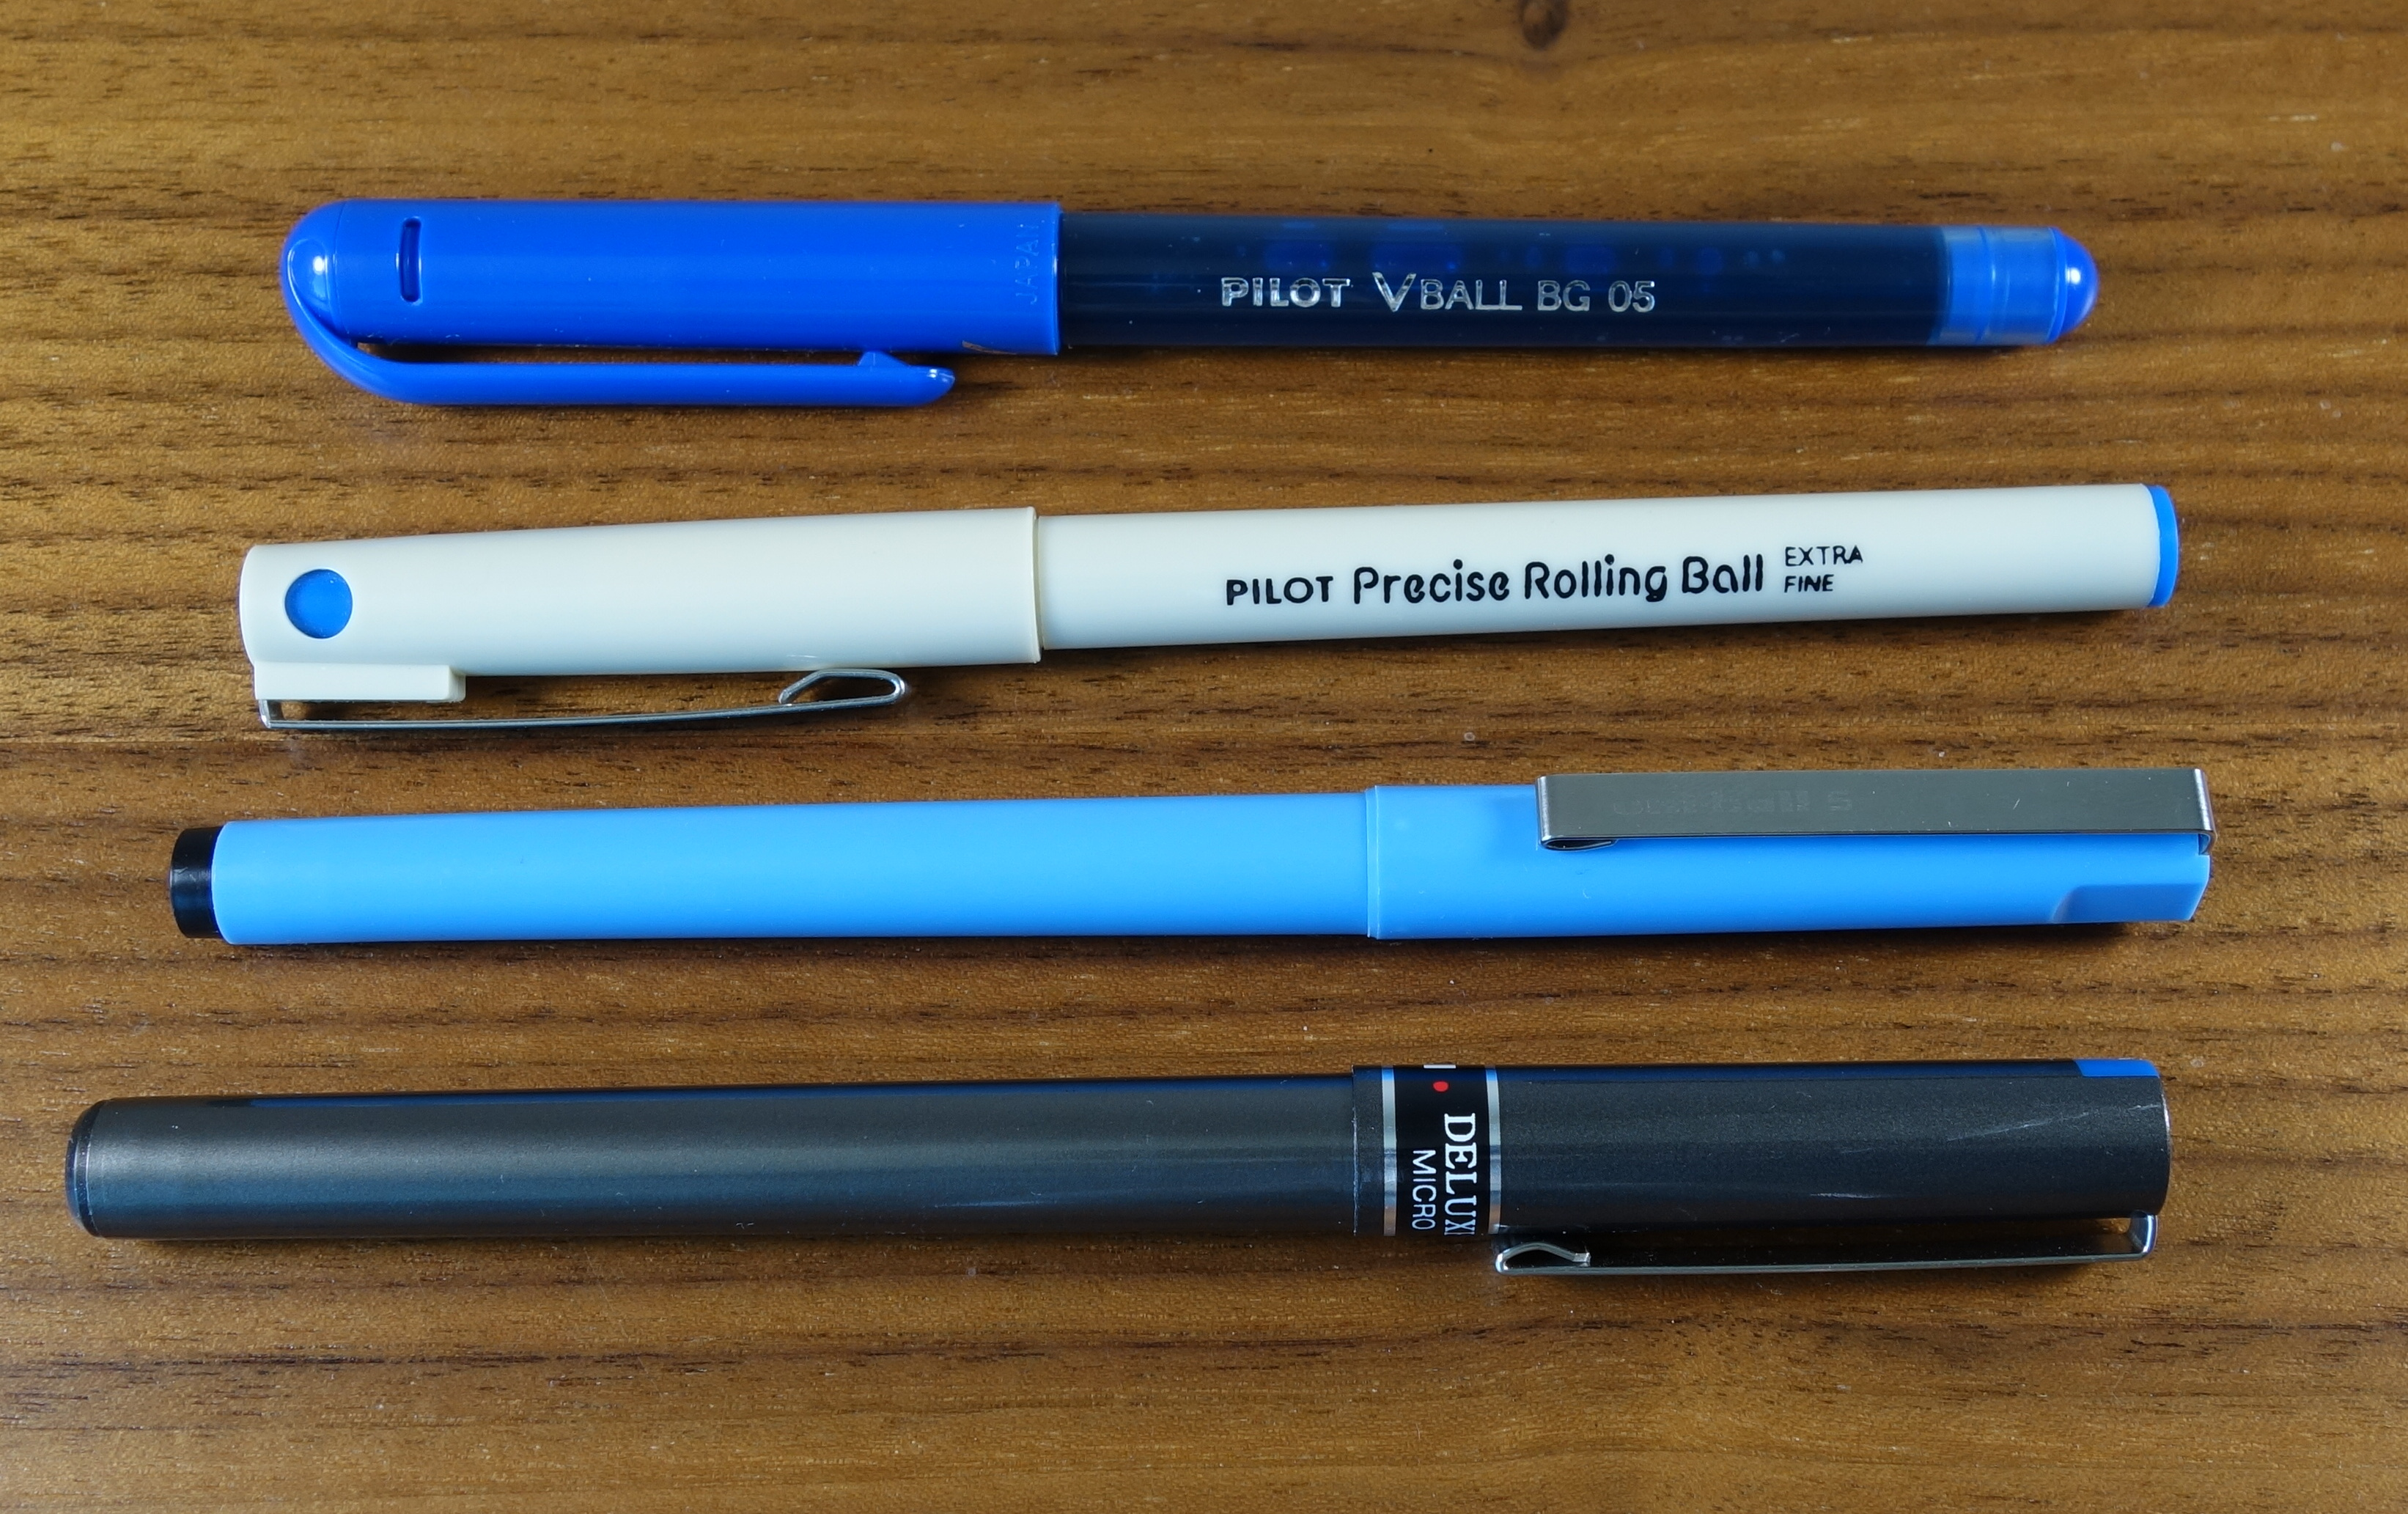 Uni-Ball 5 Roller Ball Pen Review – THE UNROYAL WARRANT